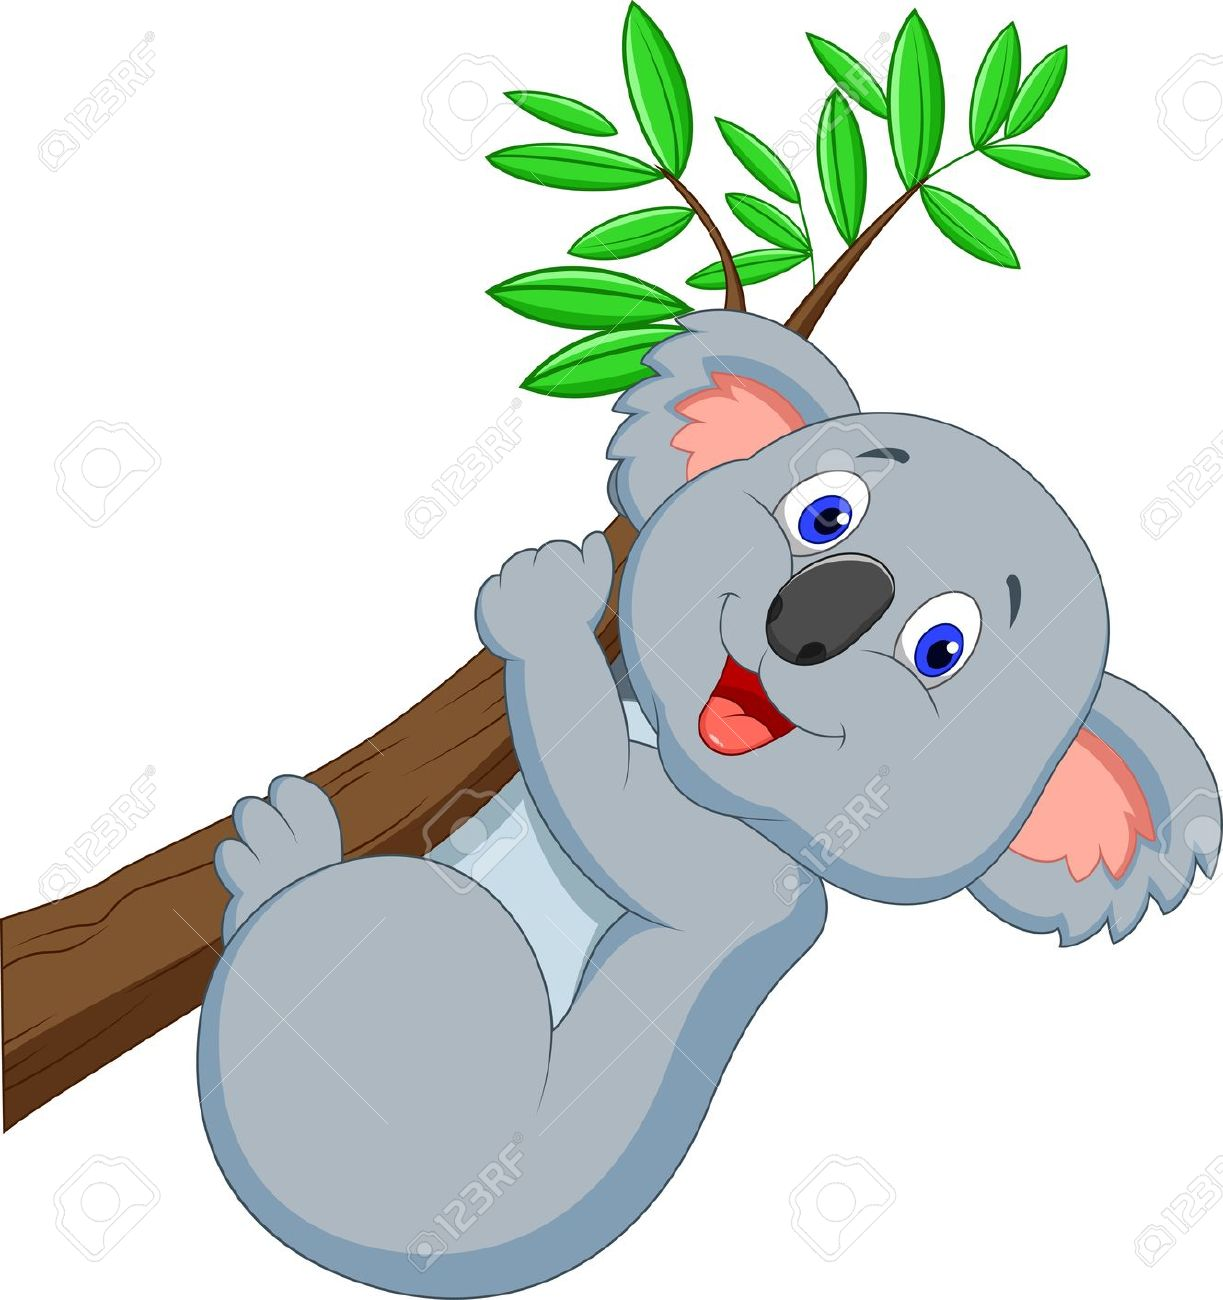 koala bear: Cute koala cartoon